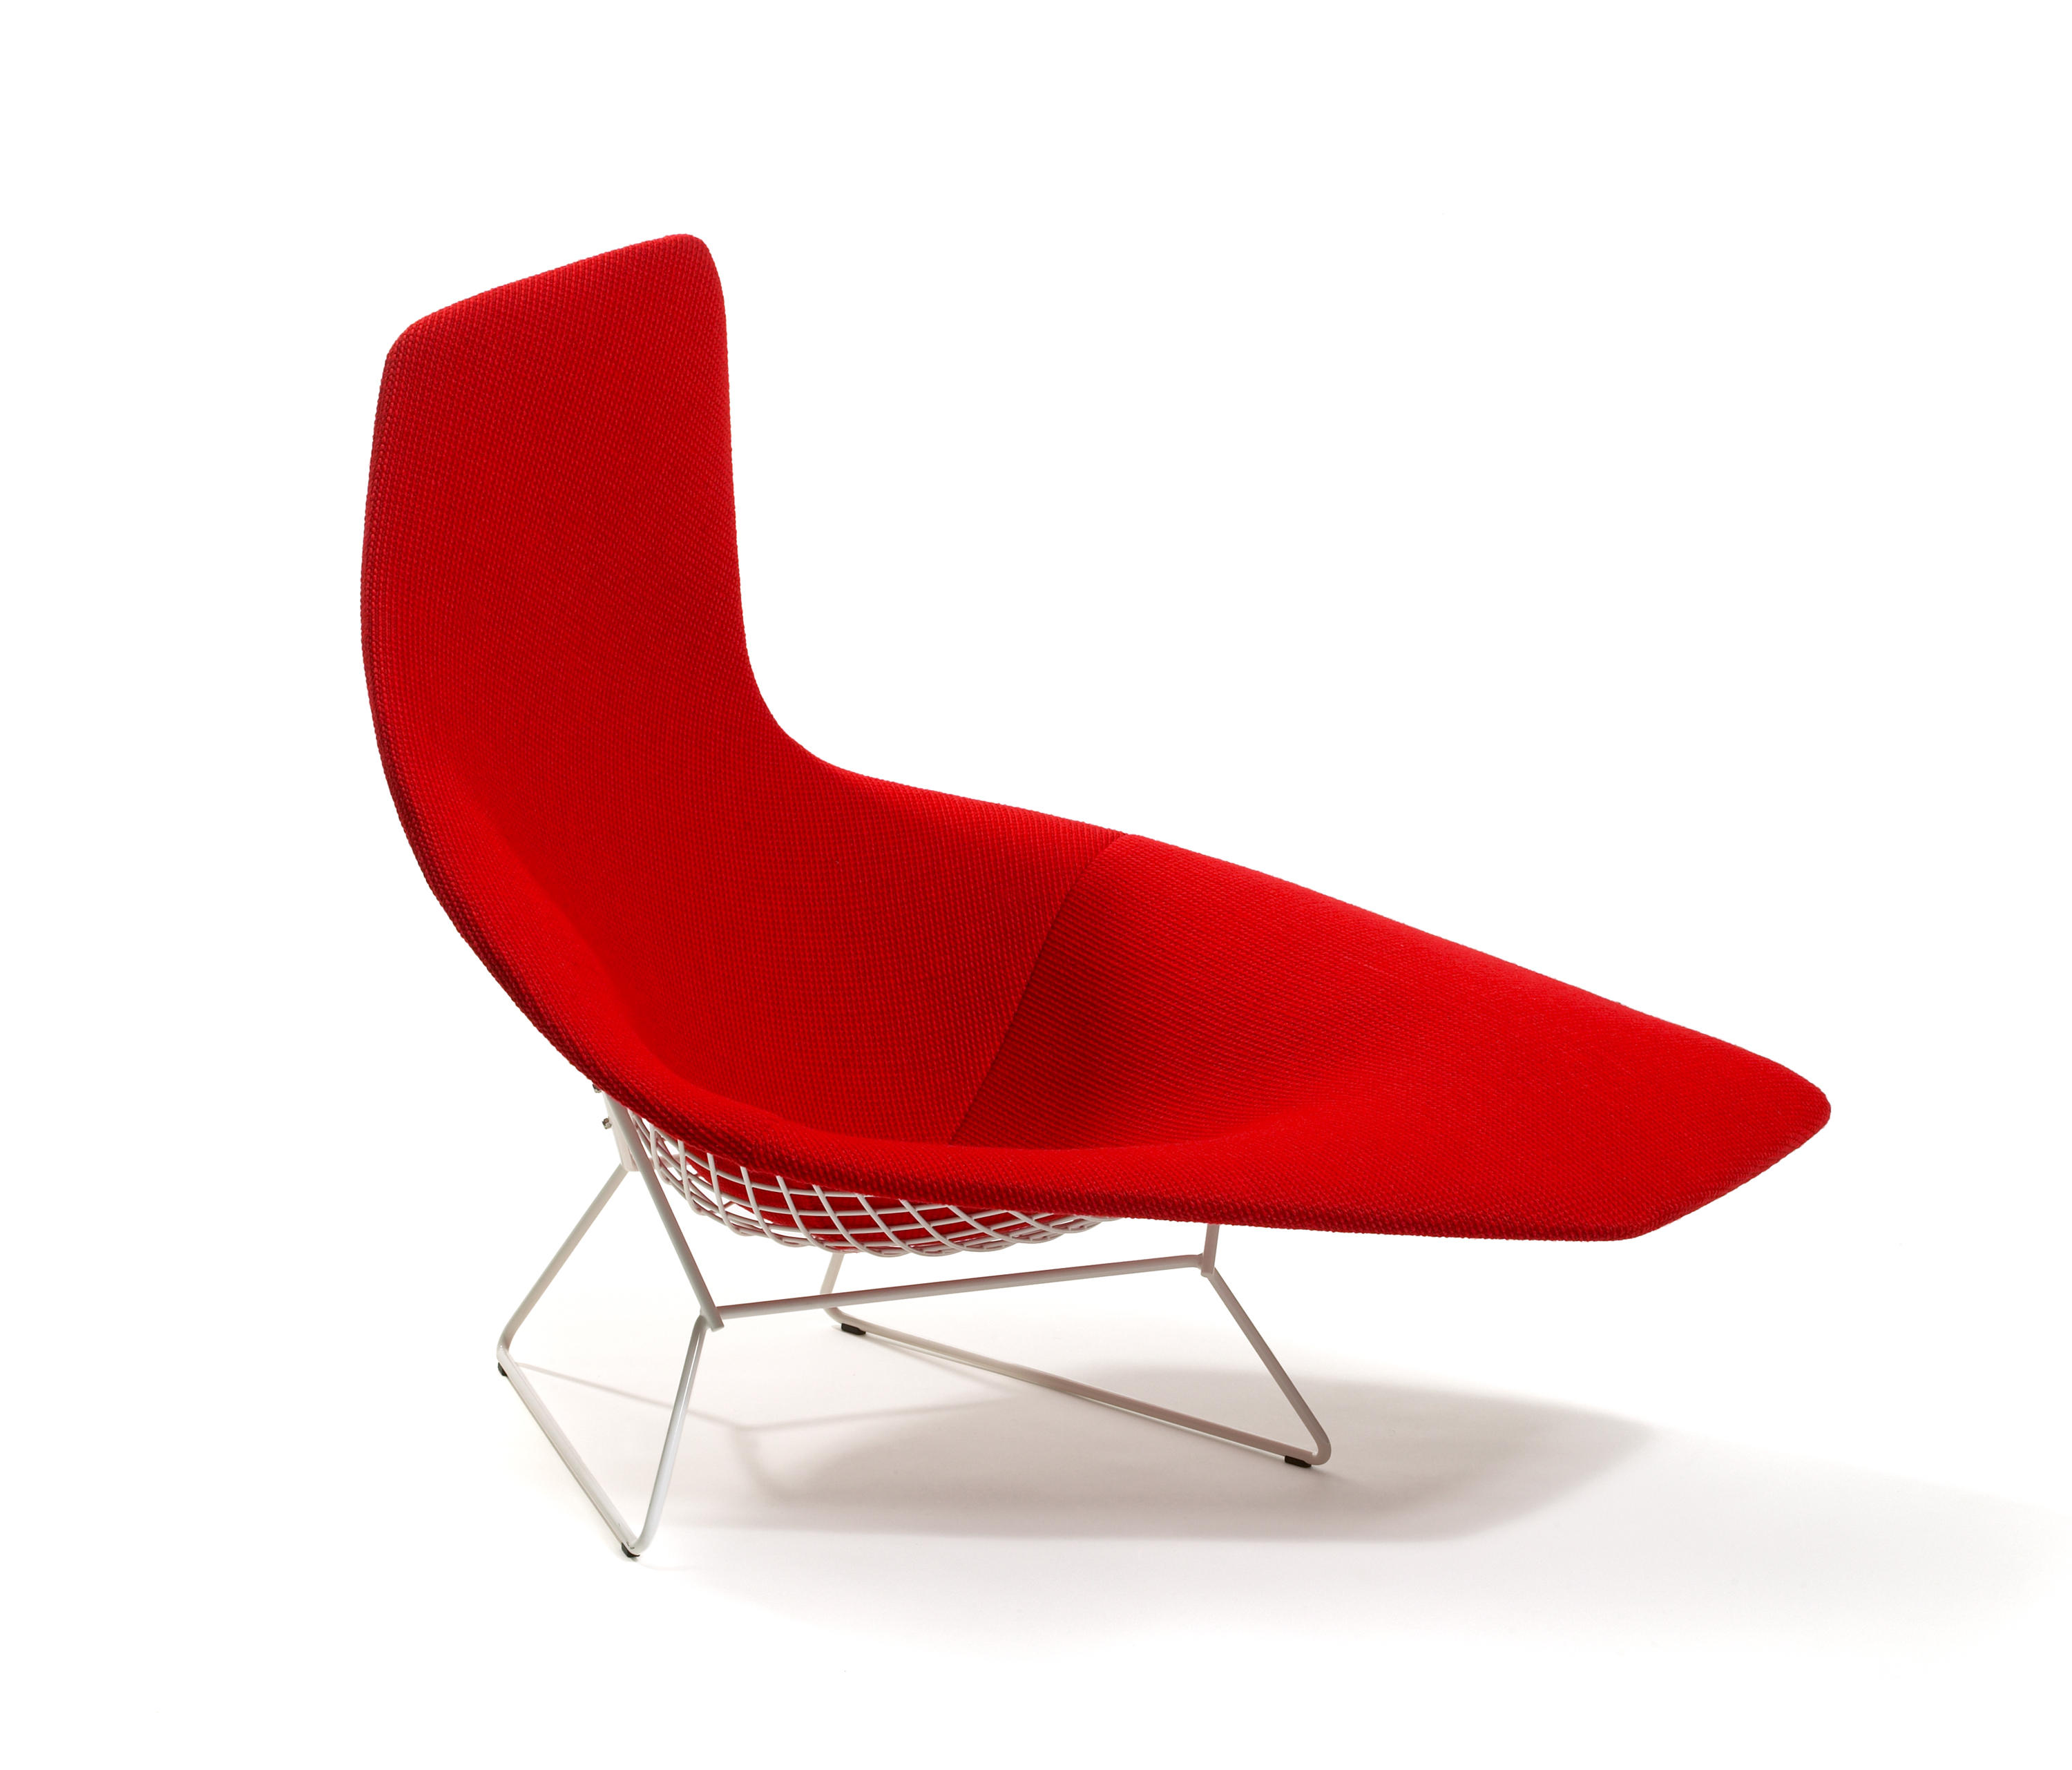 Bertoia asymmetric chaise chaise longues from knoll international architonic - Chaise bertoia knoll ...